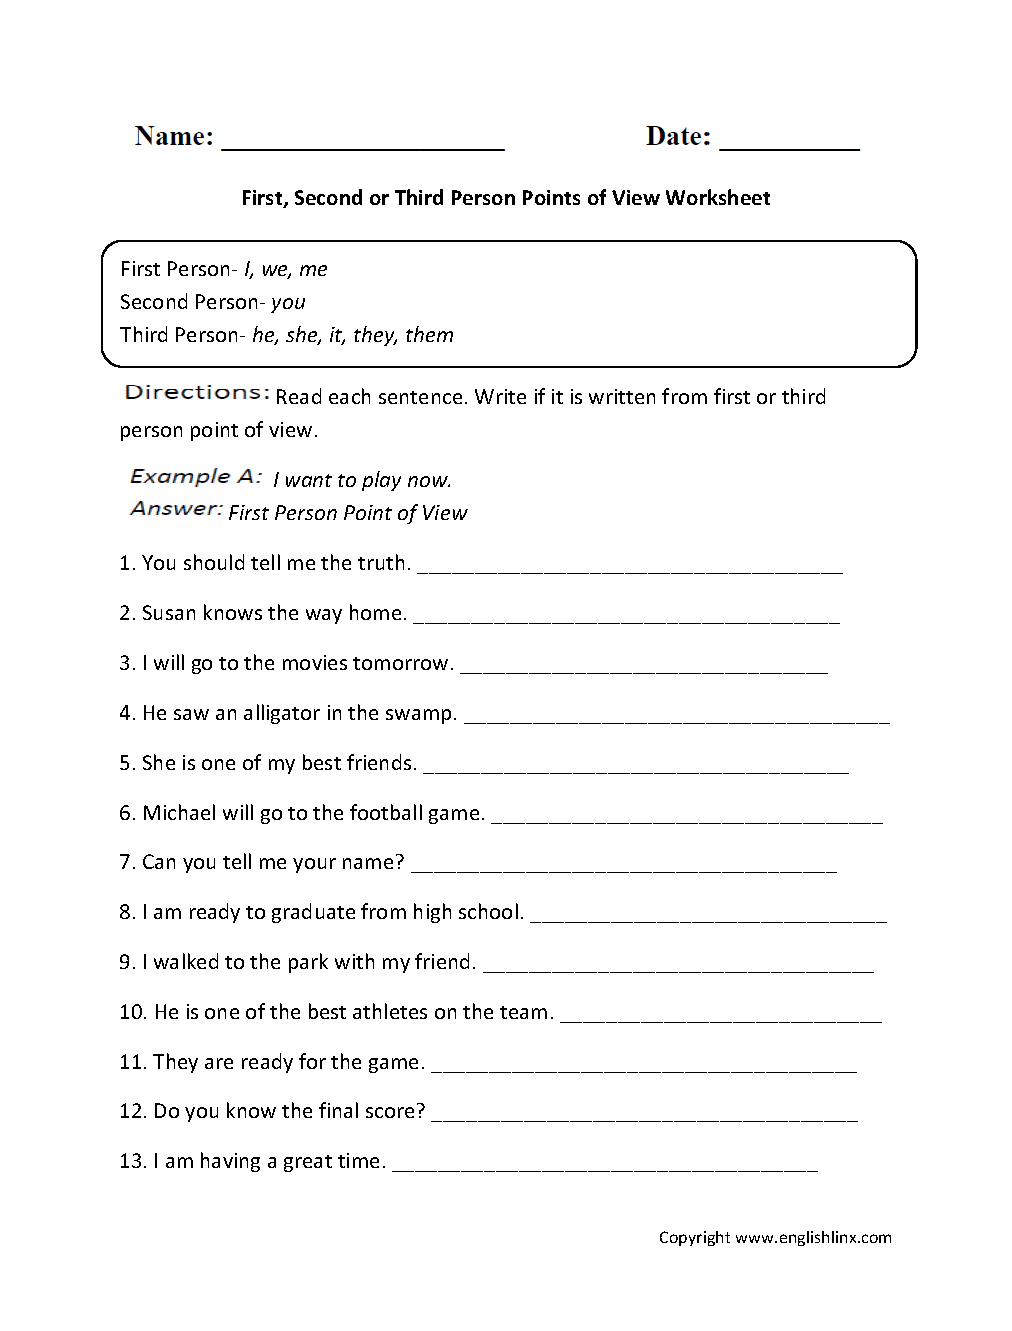 First, Second Or Third Person Points Of View Worksheet | Great | Language Worksheets For 3Rd Grade Printable